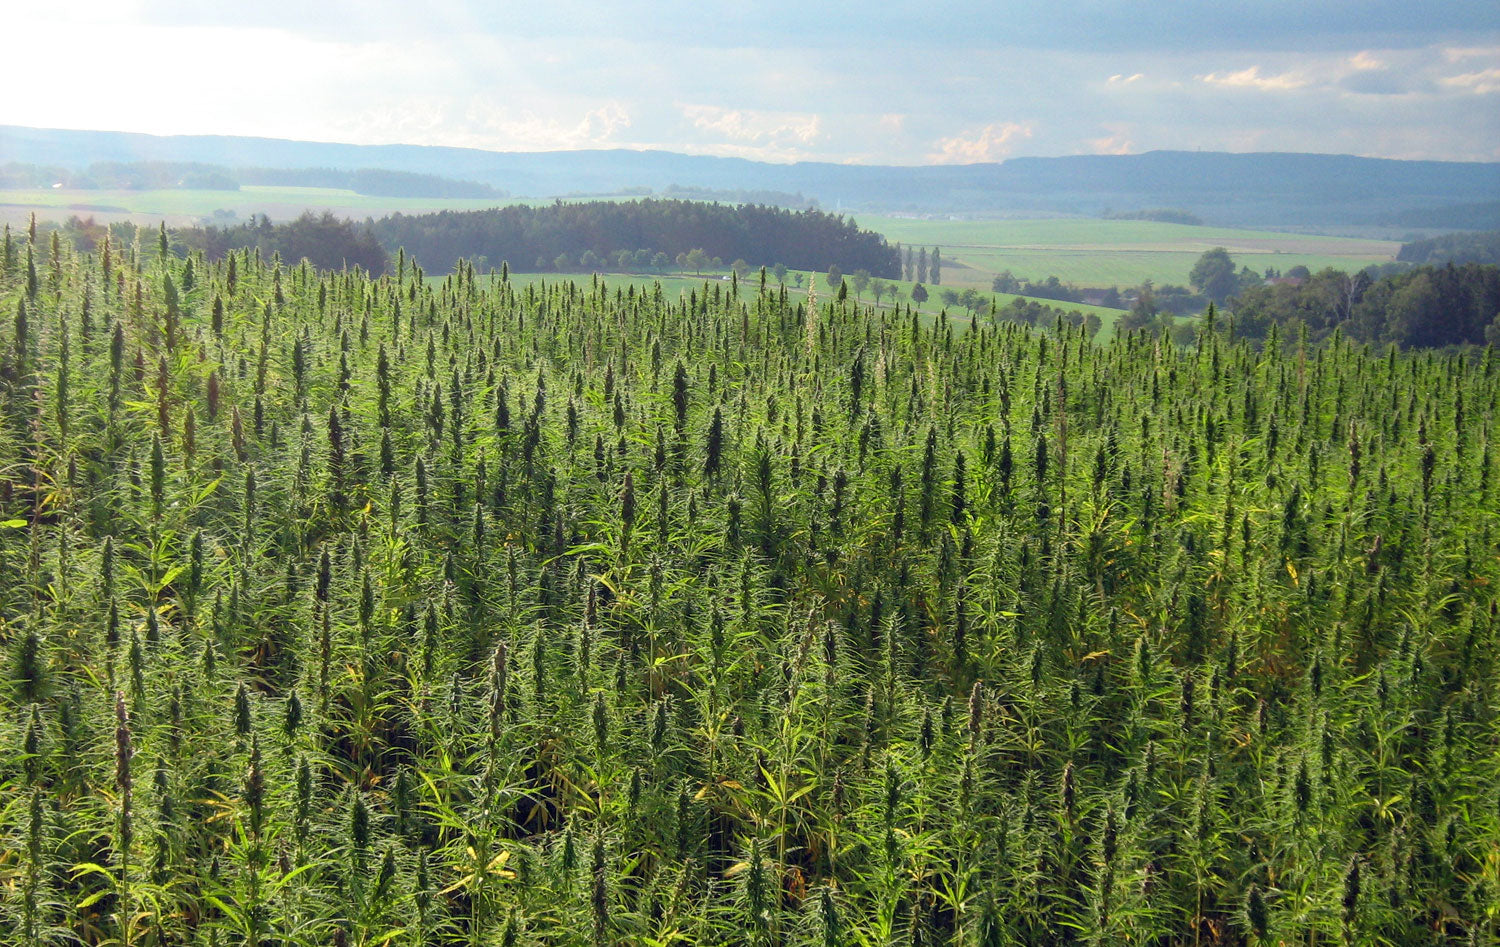 10 Things You Probably Didn't Know About Hemp